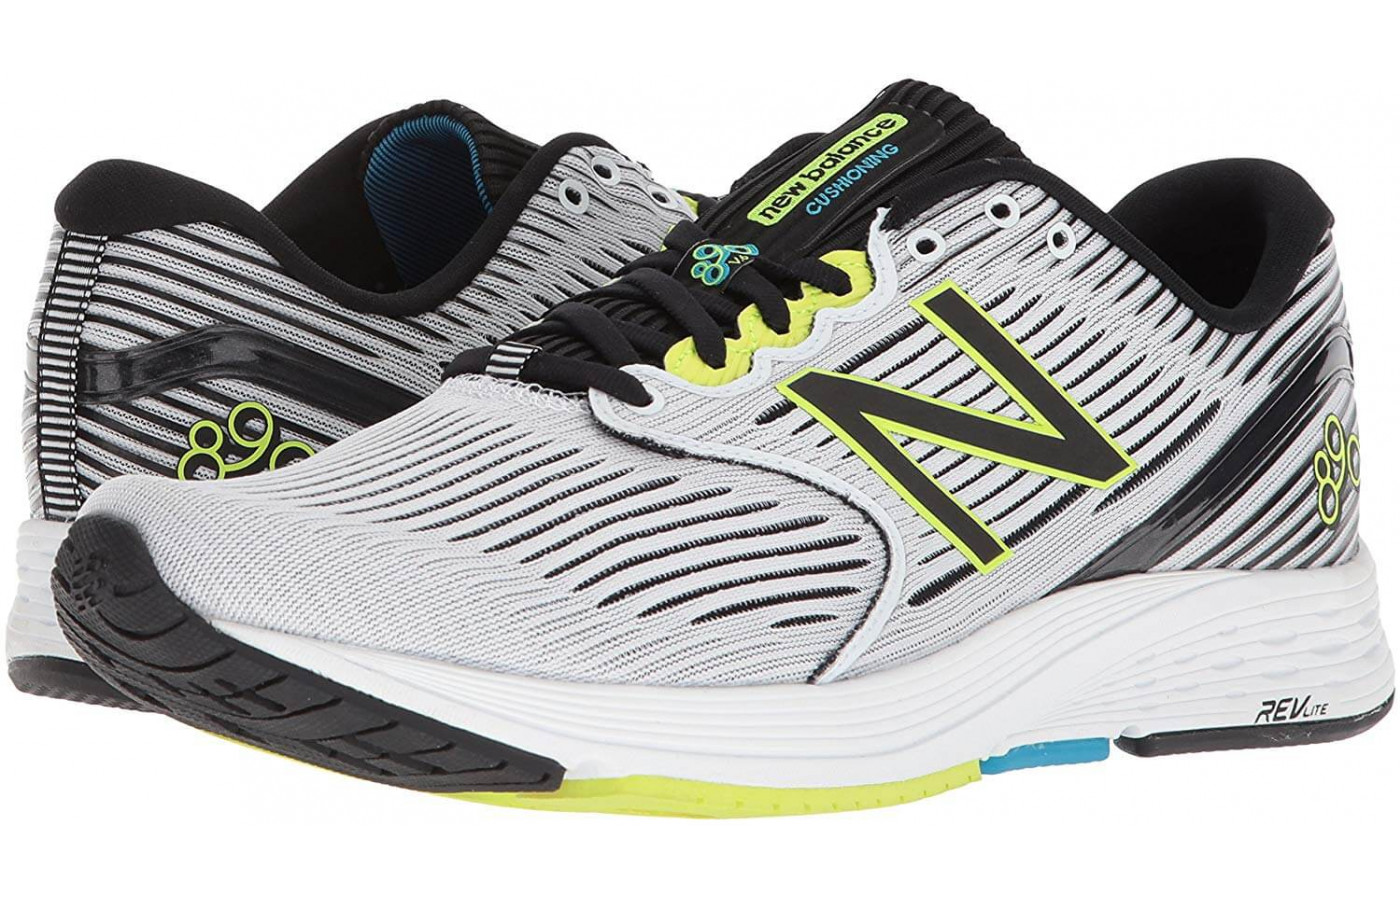 New Balance 890 v6 Reviewed & Rated